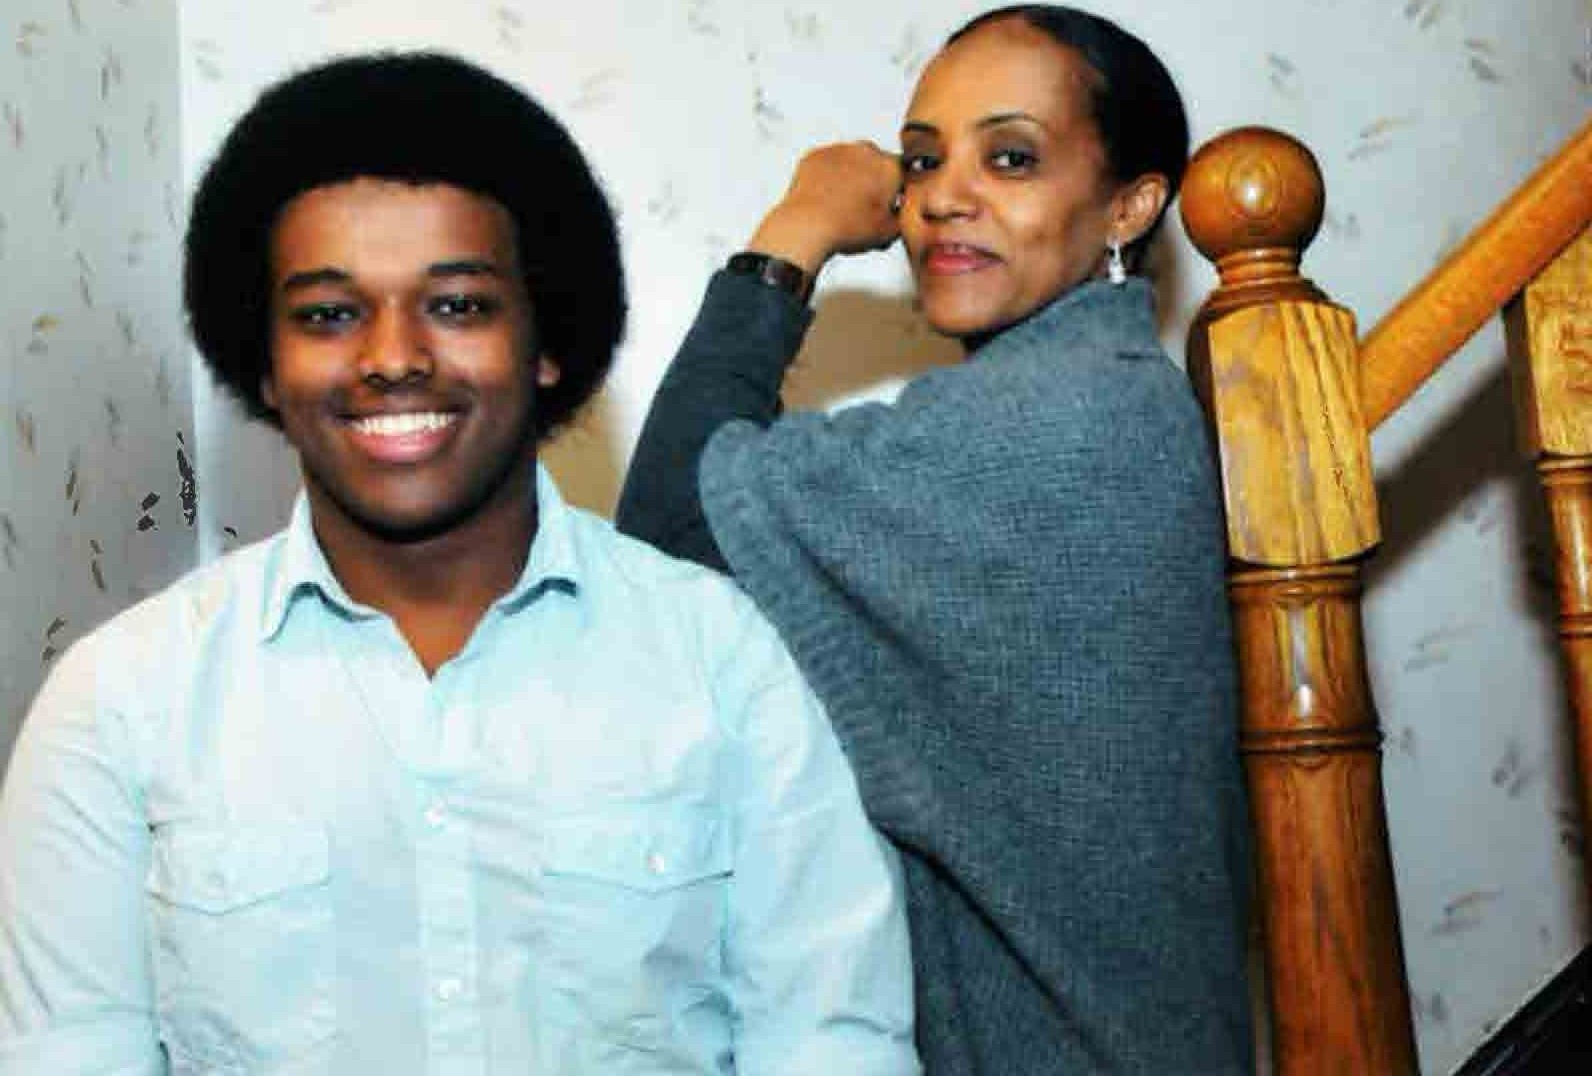 Anna and her Son Nebyu posing for a photo together, standing on a staircase